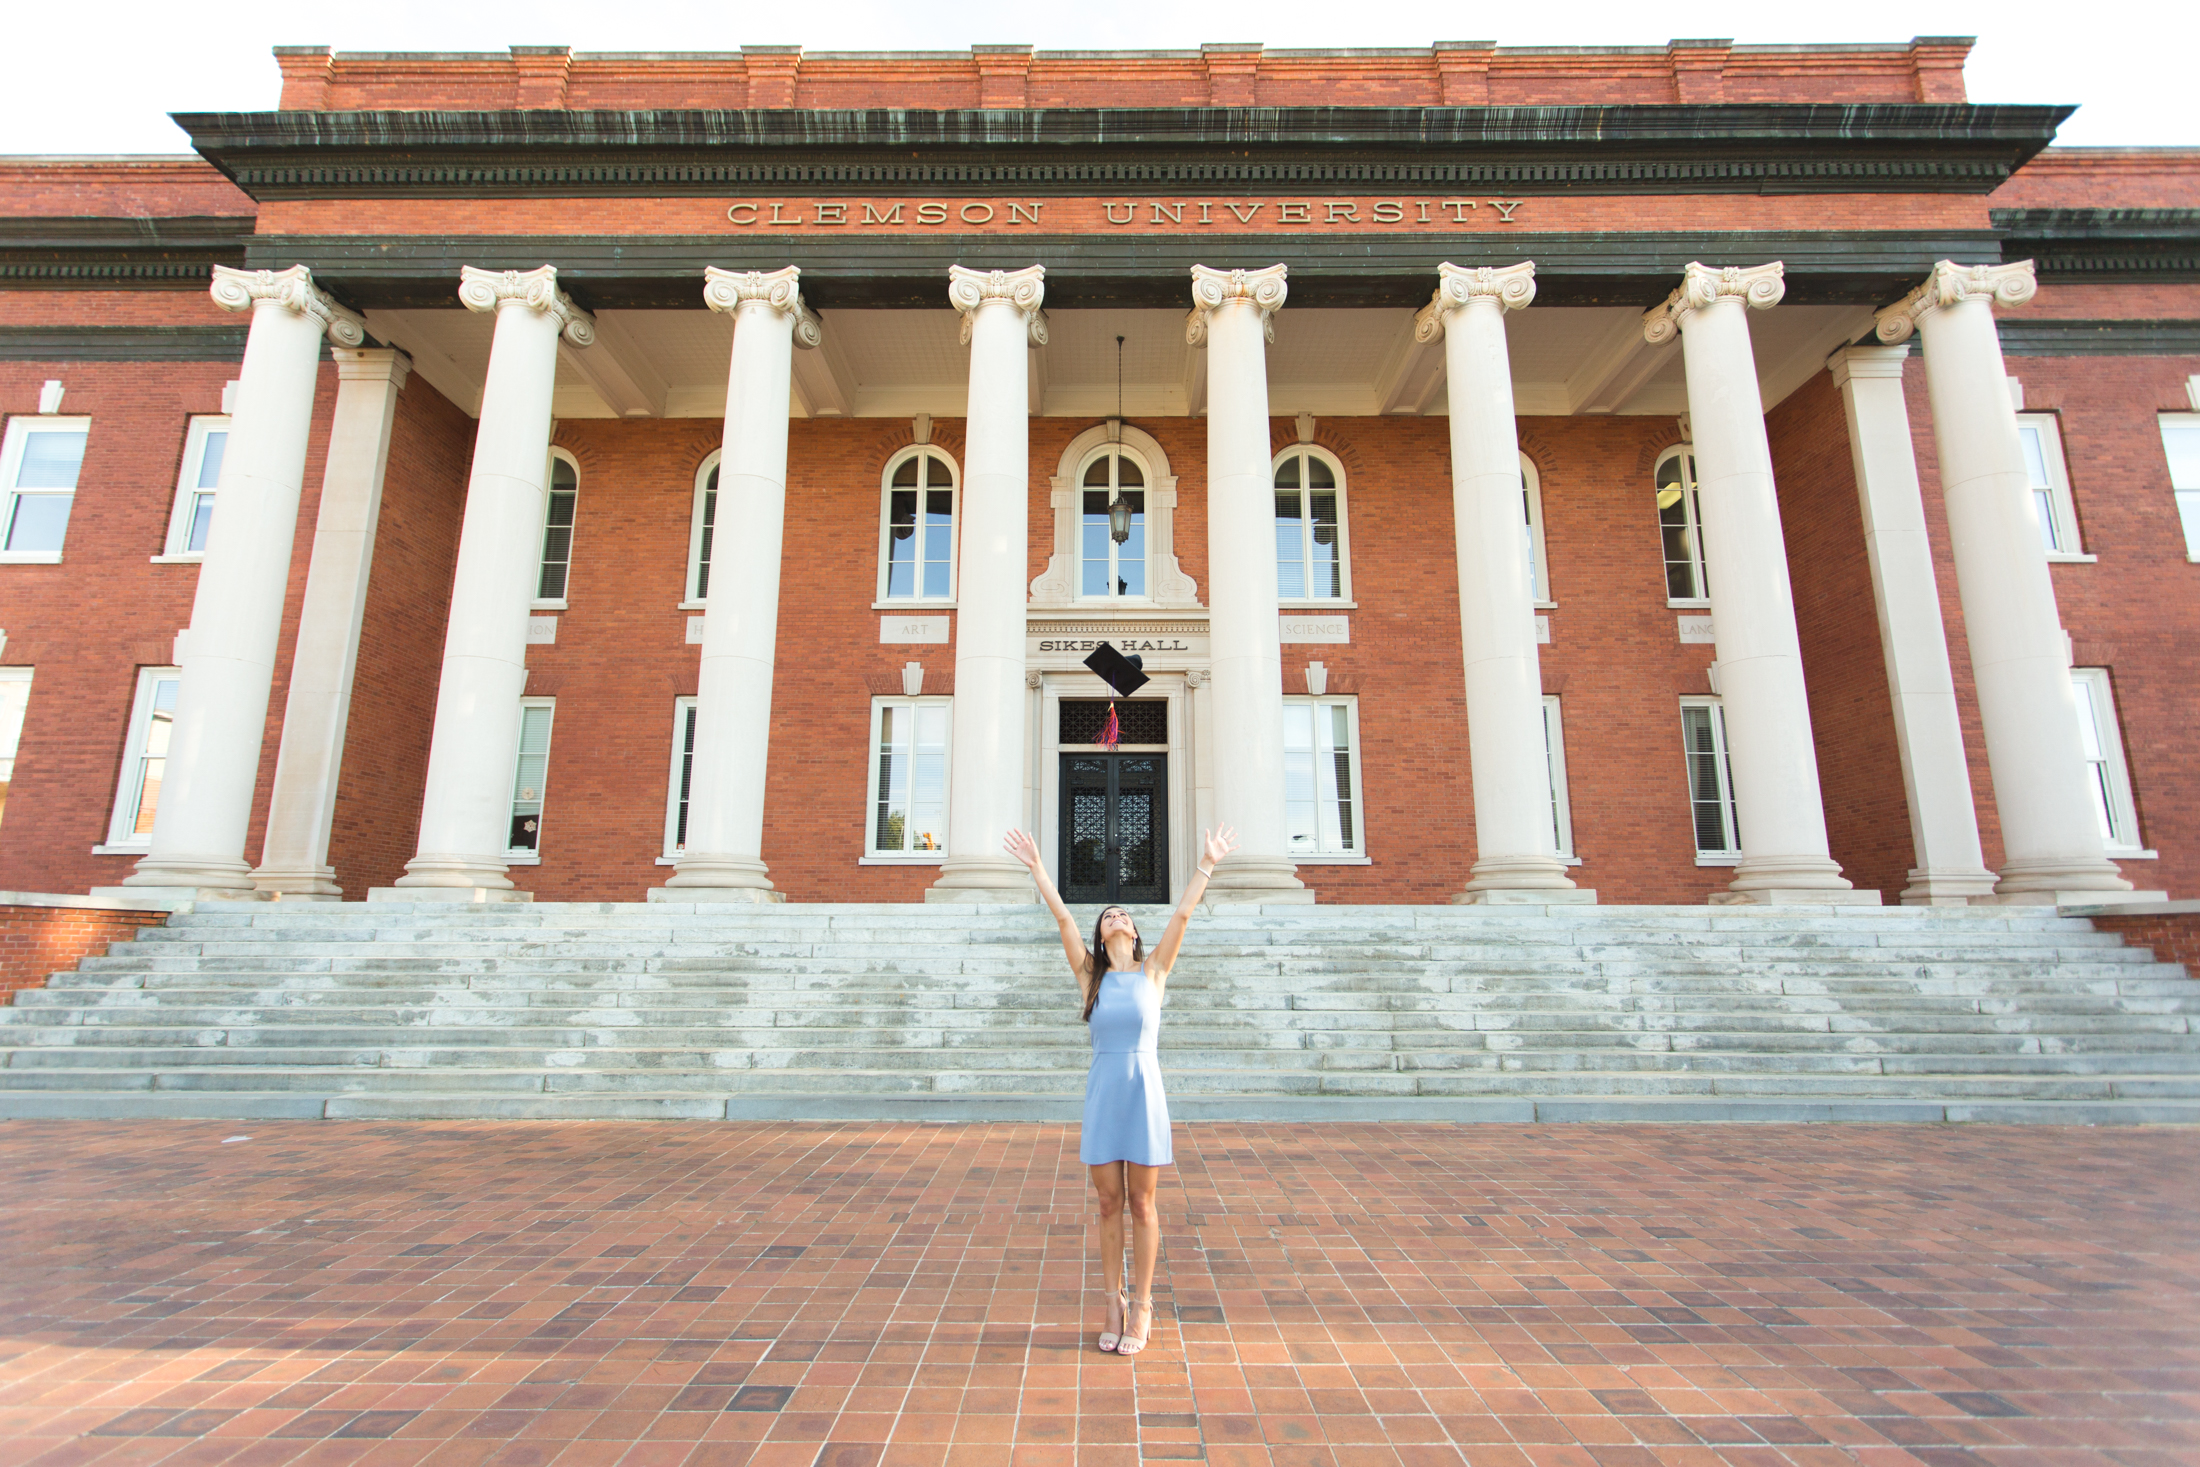 clemson university senior photos-5424.jpg